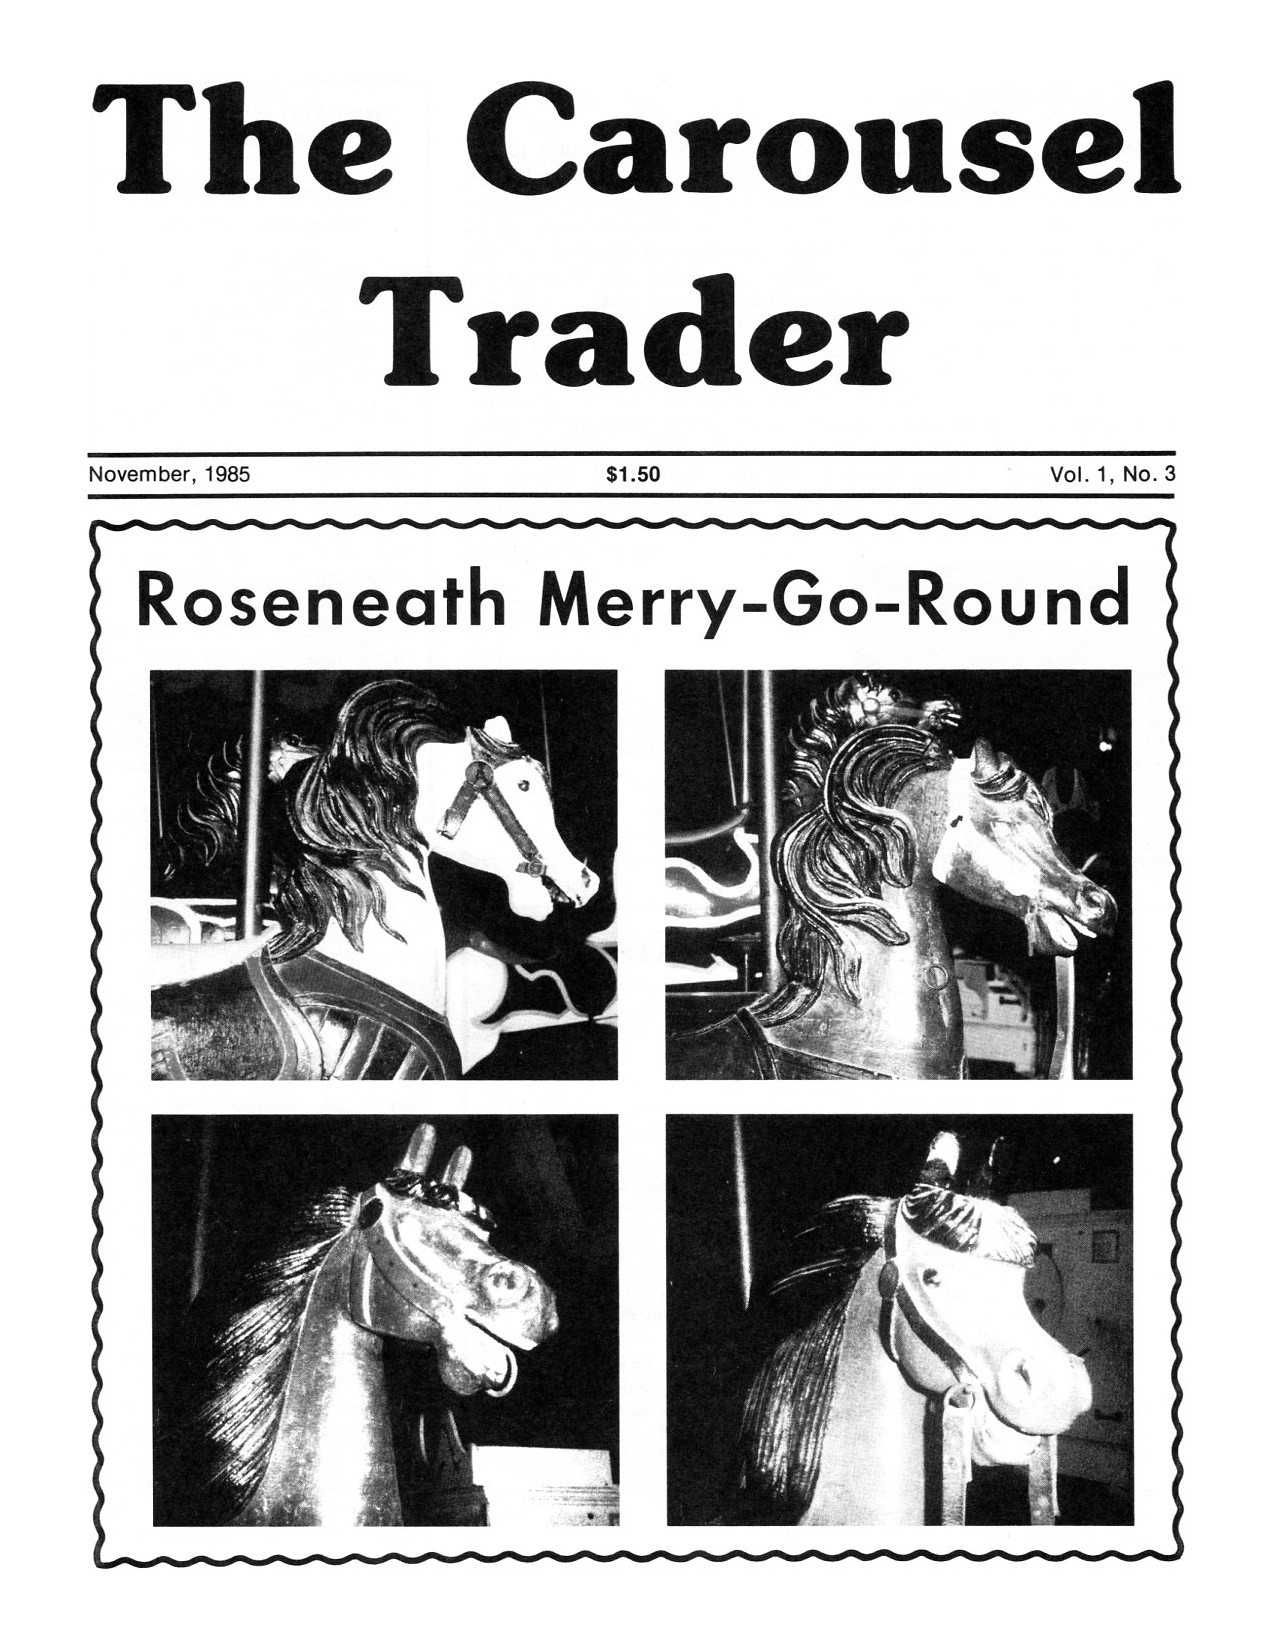 Carousel-news-cover-v1n3-Roseneath-merry-go-round-November-1985